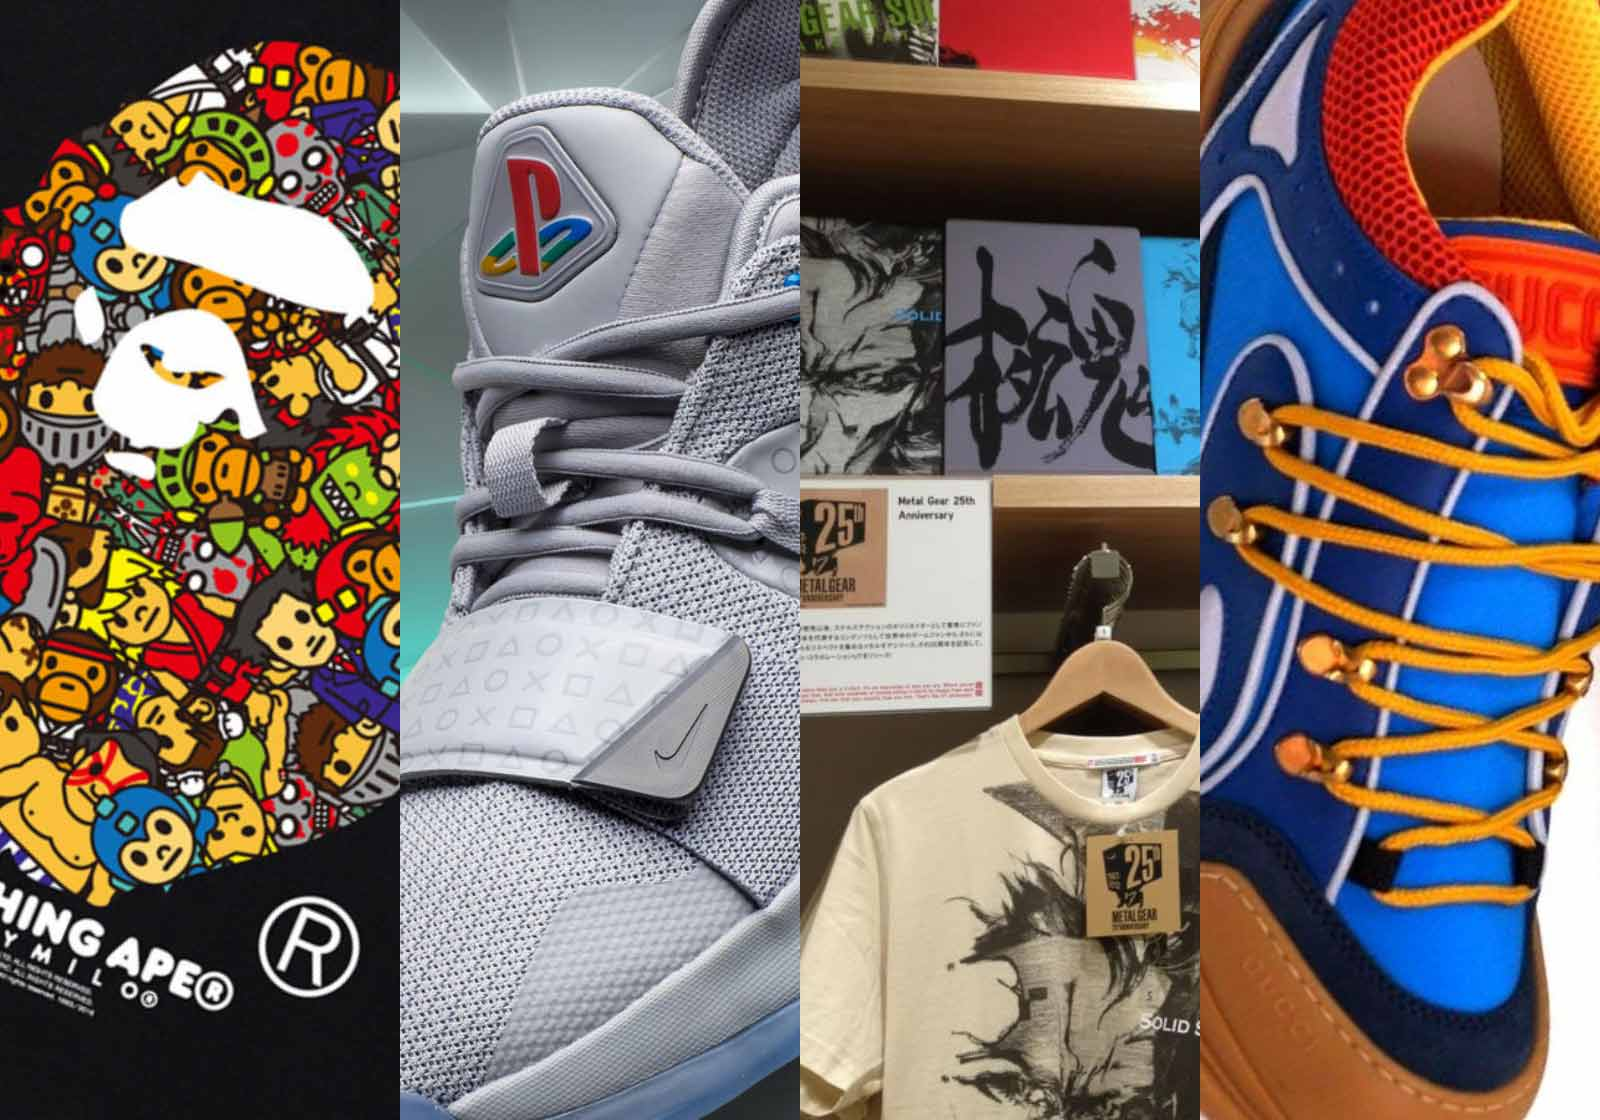 Retrogaming Meets Street Wear / Fashion: A Quick Look